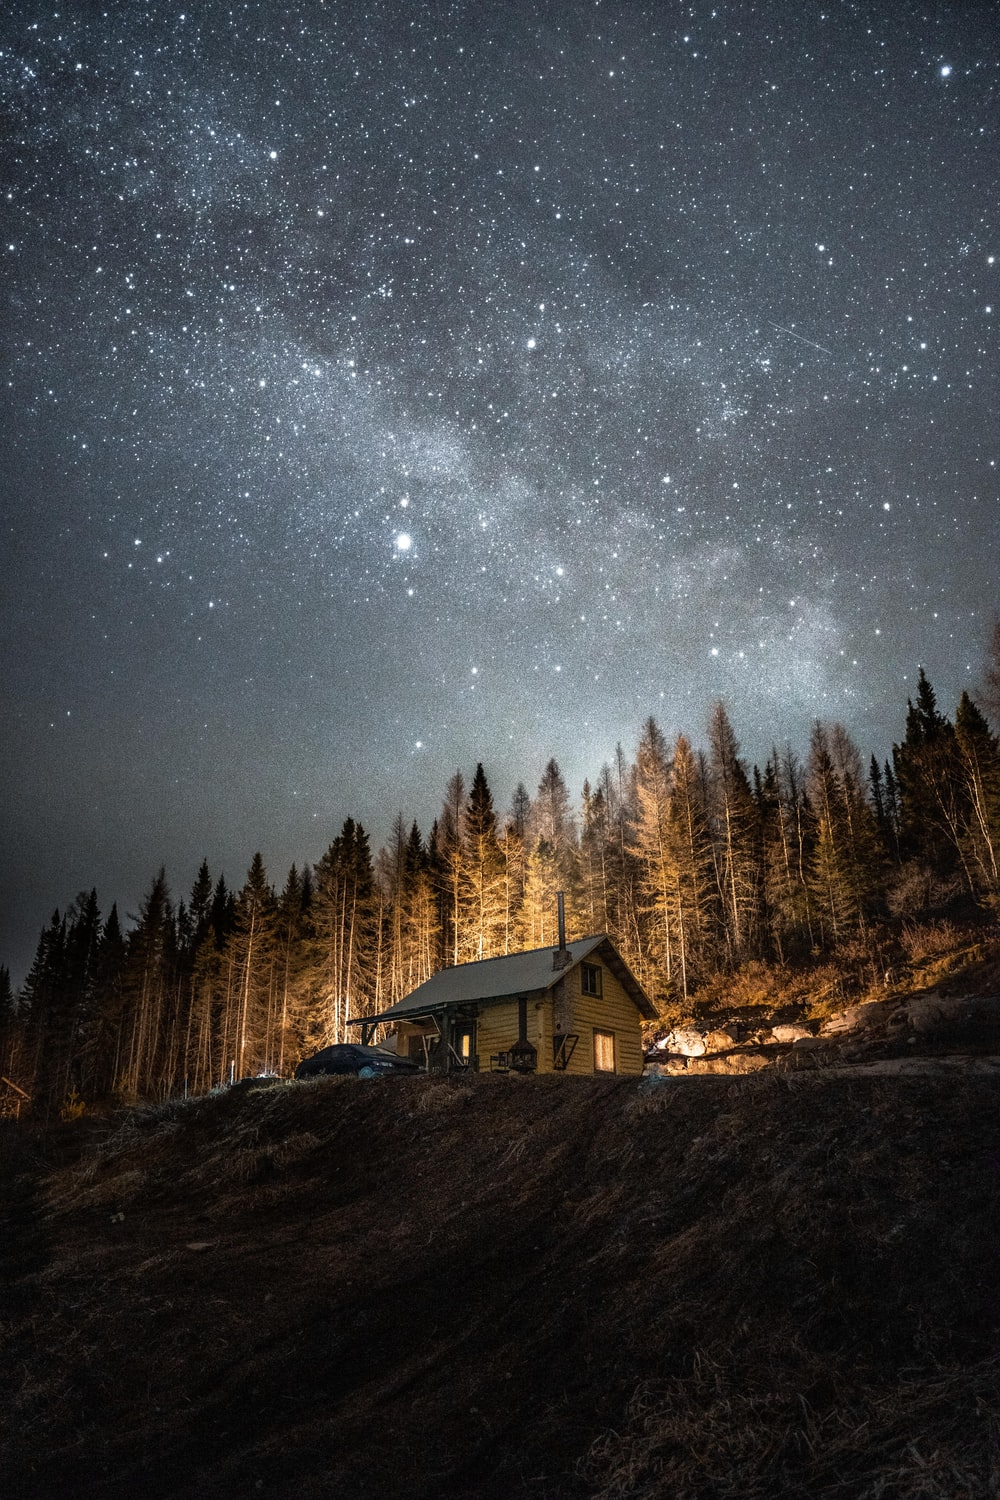 brown wooden house near trees under starry night